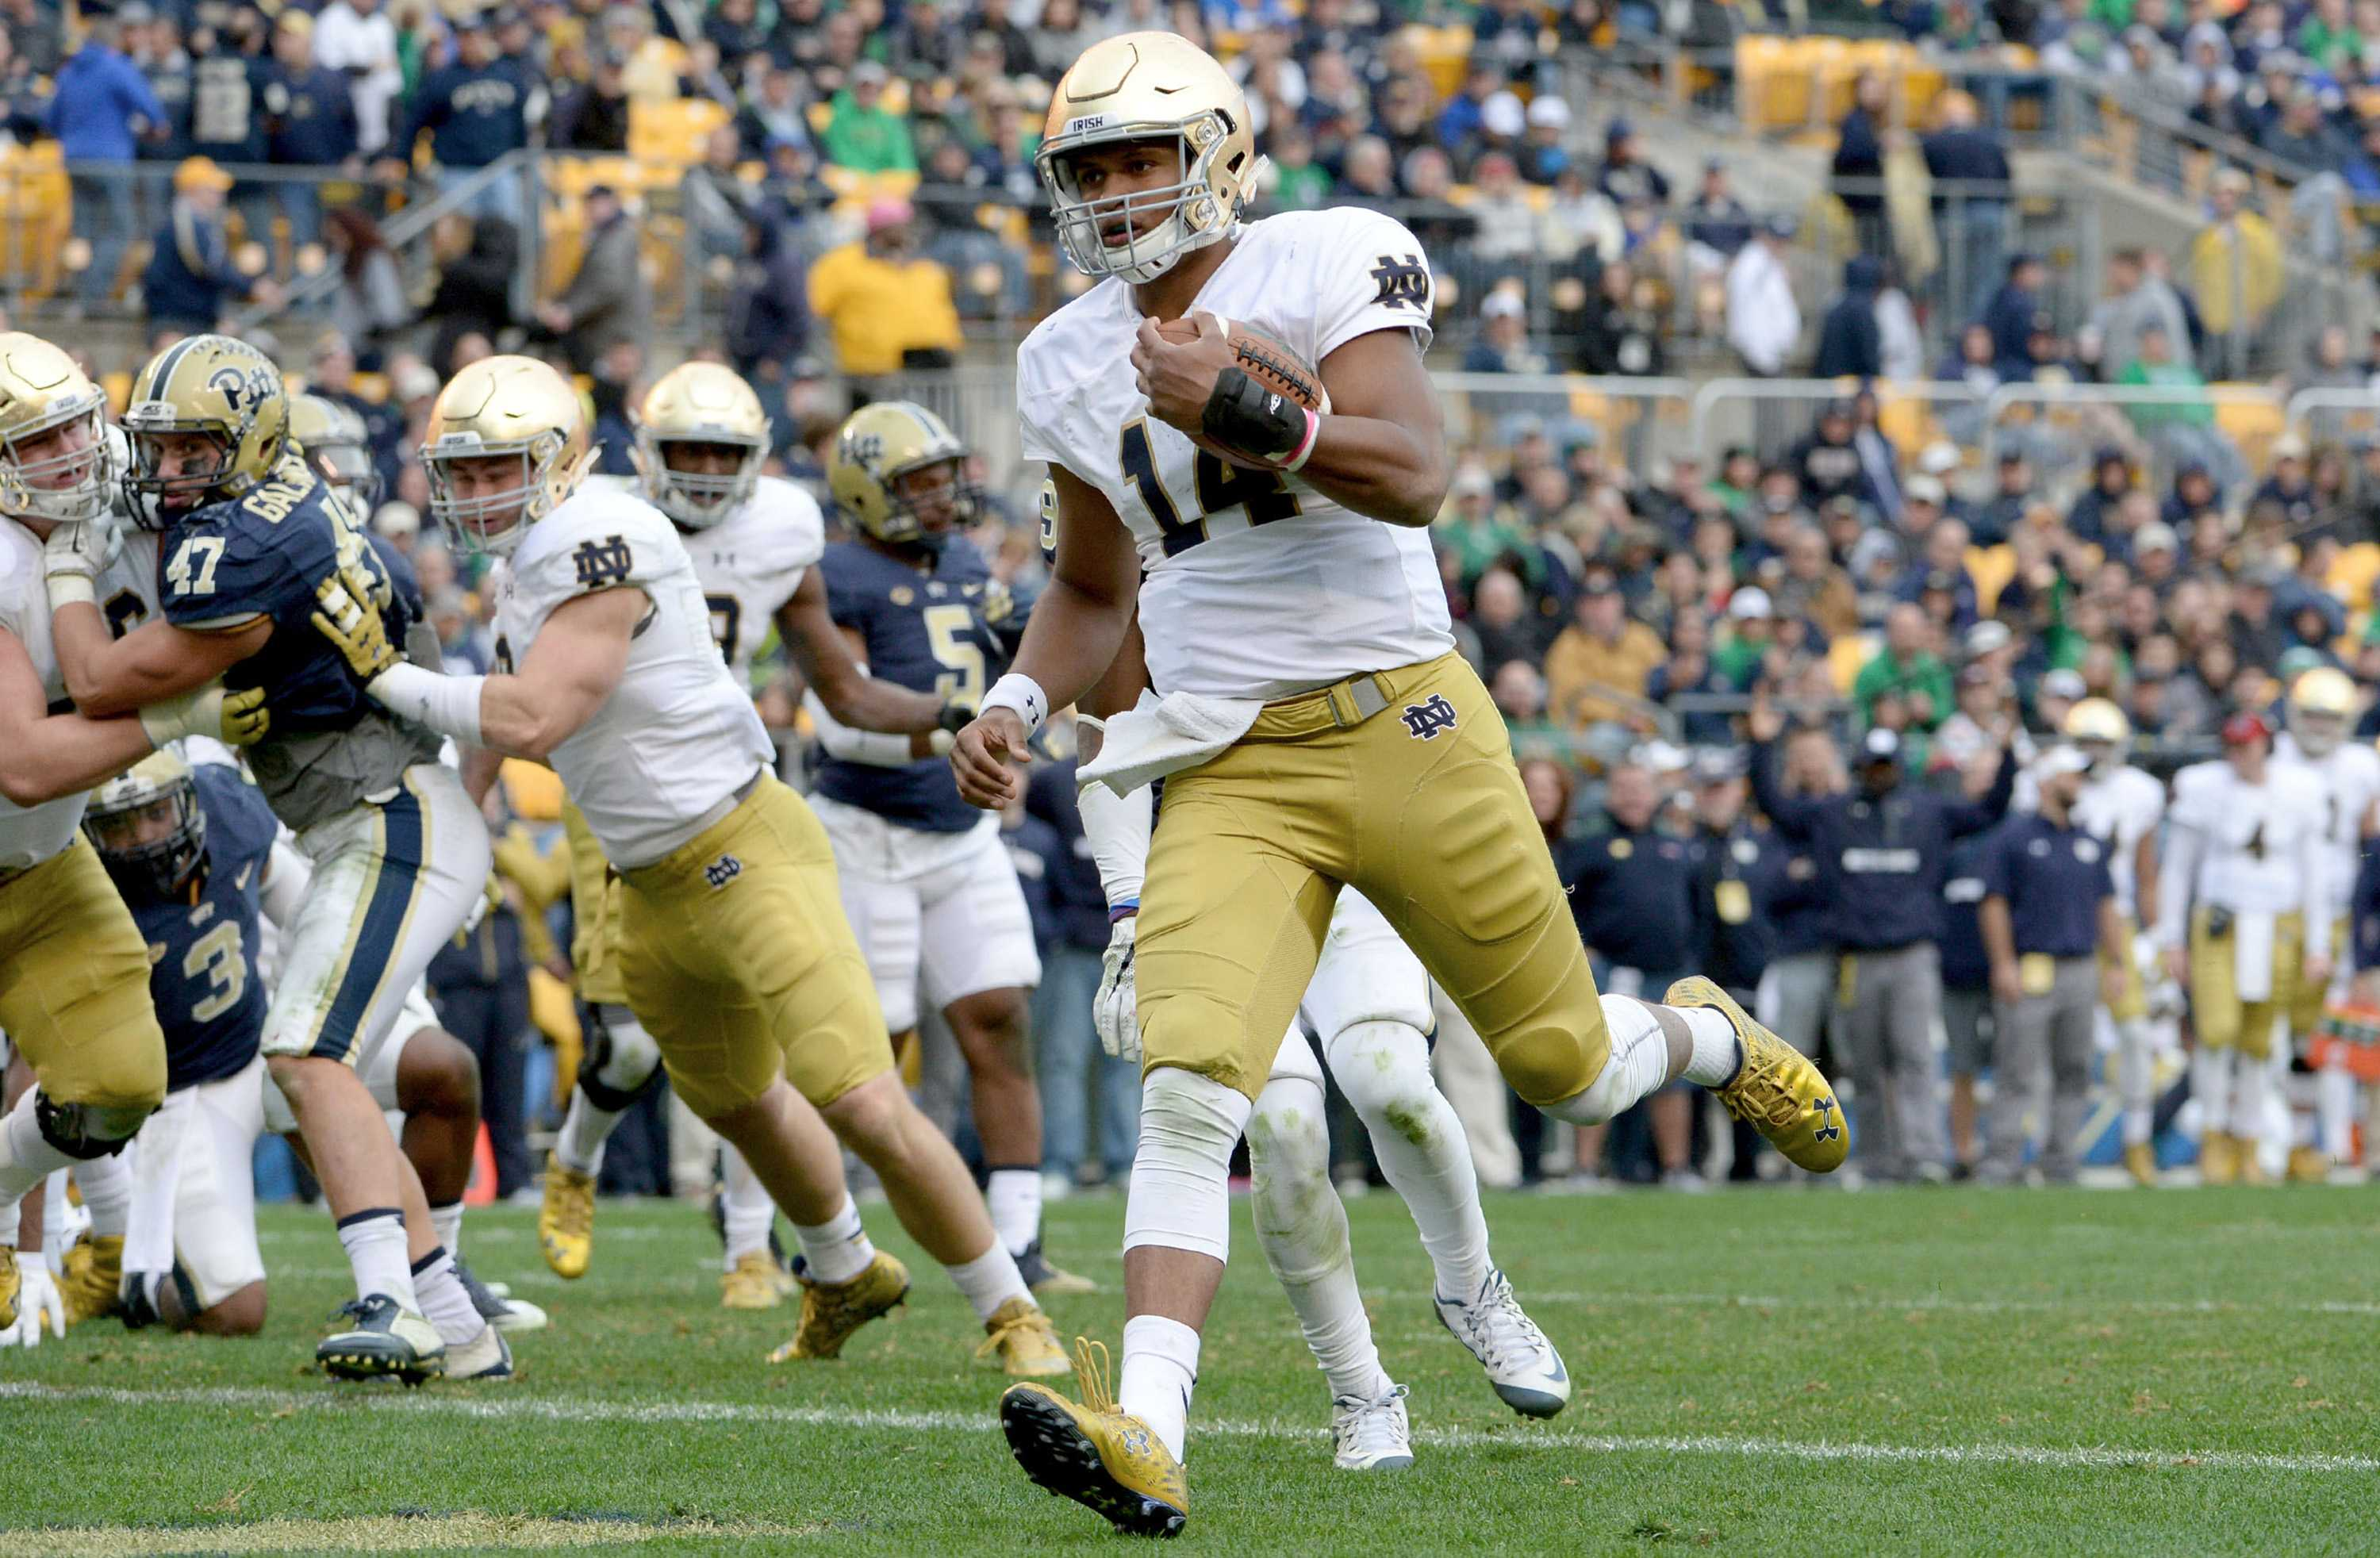 Notre Dame quarterback DeShone Kizer scores a touchdown on a 2-yard against Pitt in the fourth quarter at Heinz Field in Pittsburgh, on Saturday, Nov. 7, 2015. Notre Dame won, 42-30. (Matt Freed/Pittsburgh Post-Gazette/TNS)